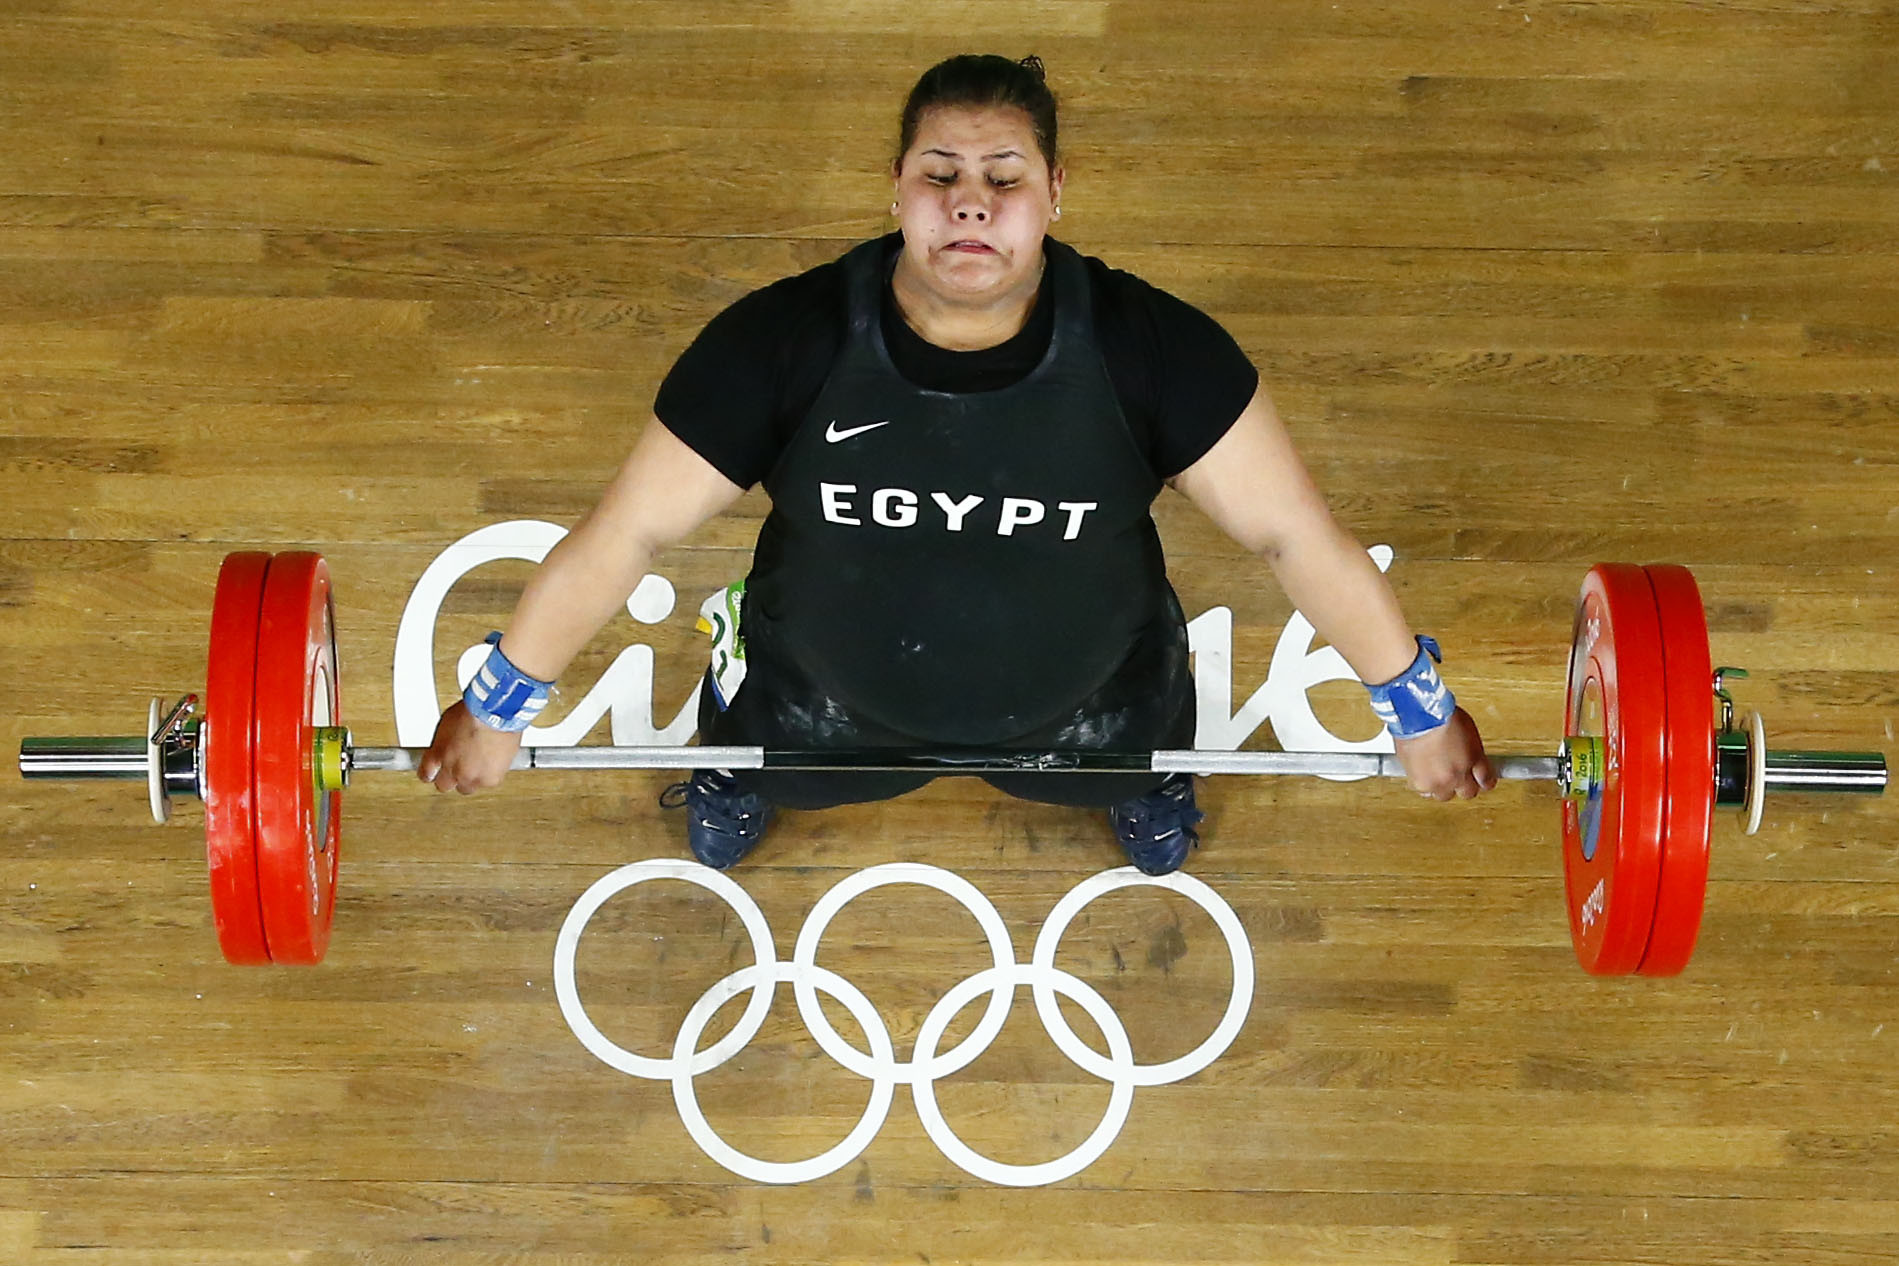 Egypt are among the countries set to miss Tokyo 2020 due to multiple doping offences ©Getty Images